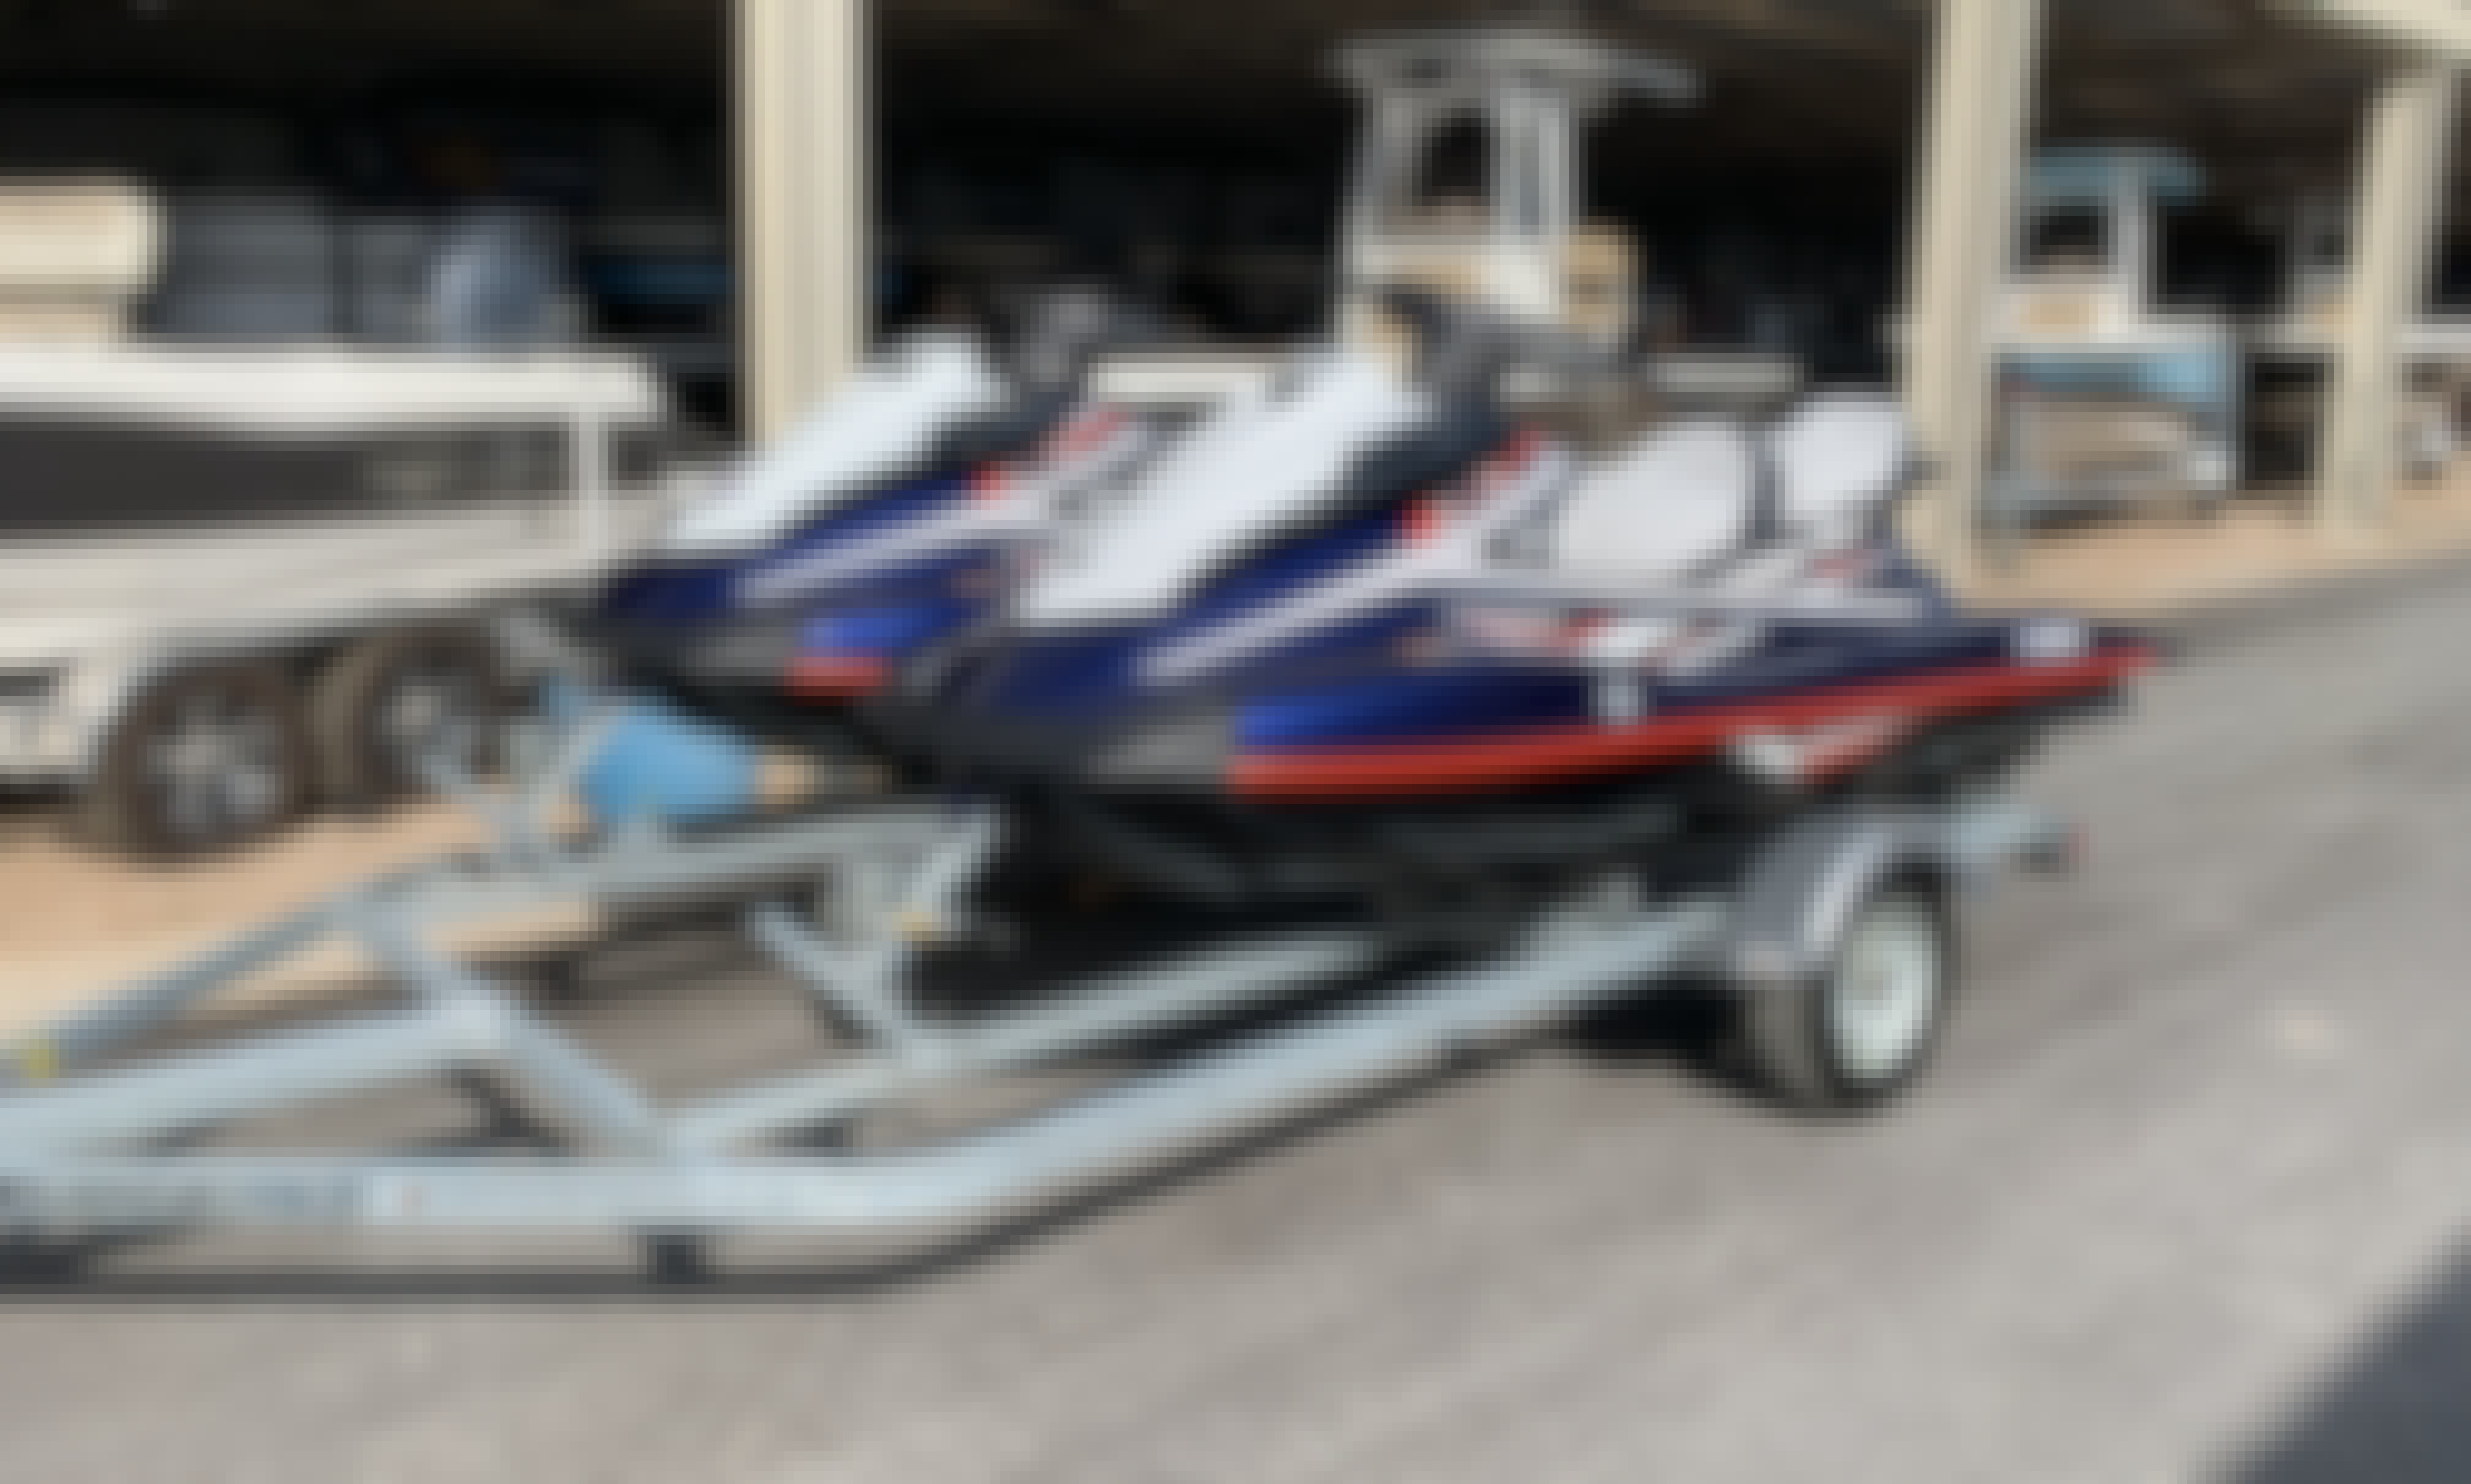 2019 Yamaha VX Cruisers Rental in Jonestown, Texas